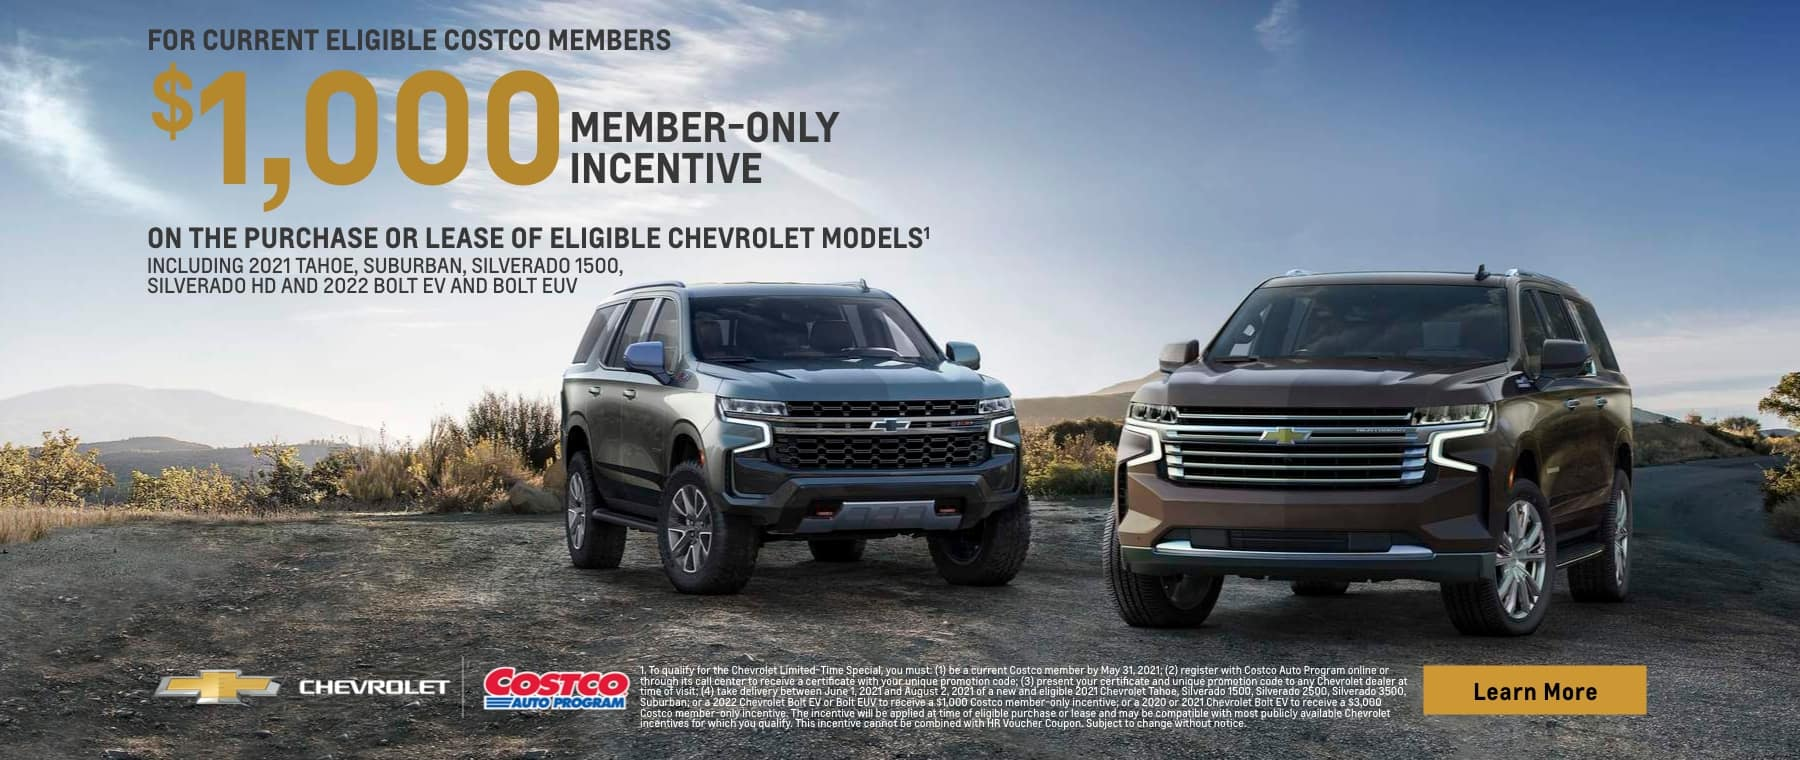 $1000 Member-only incentive on purchase or lease of eligible Chevrolet models